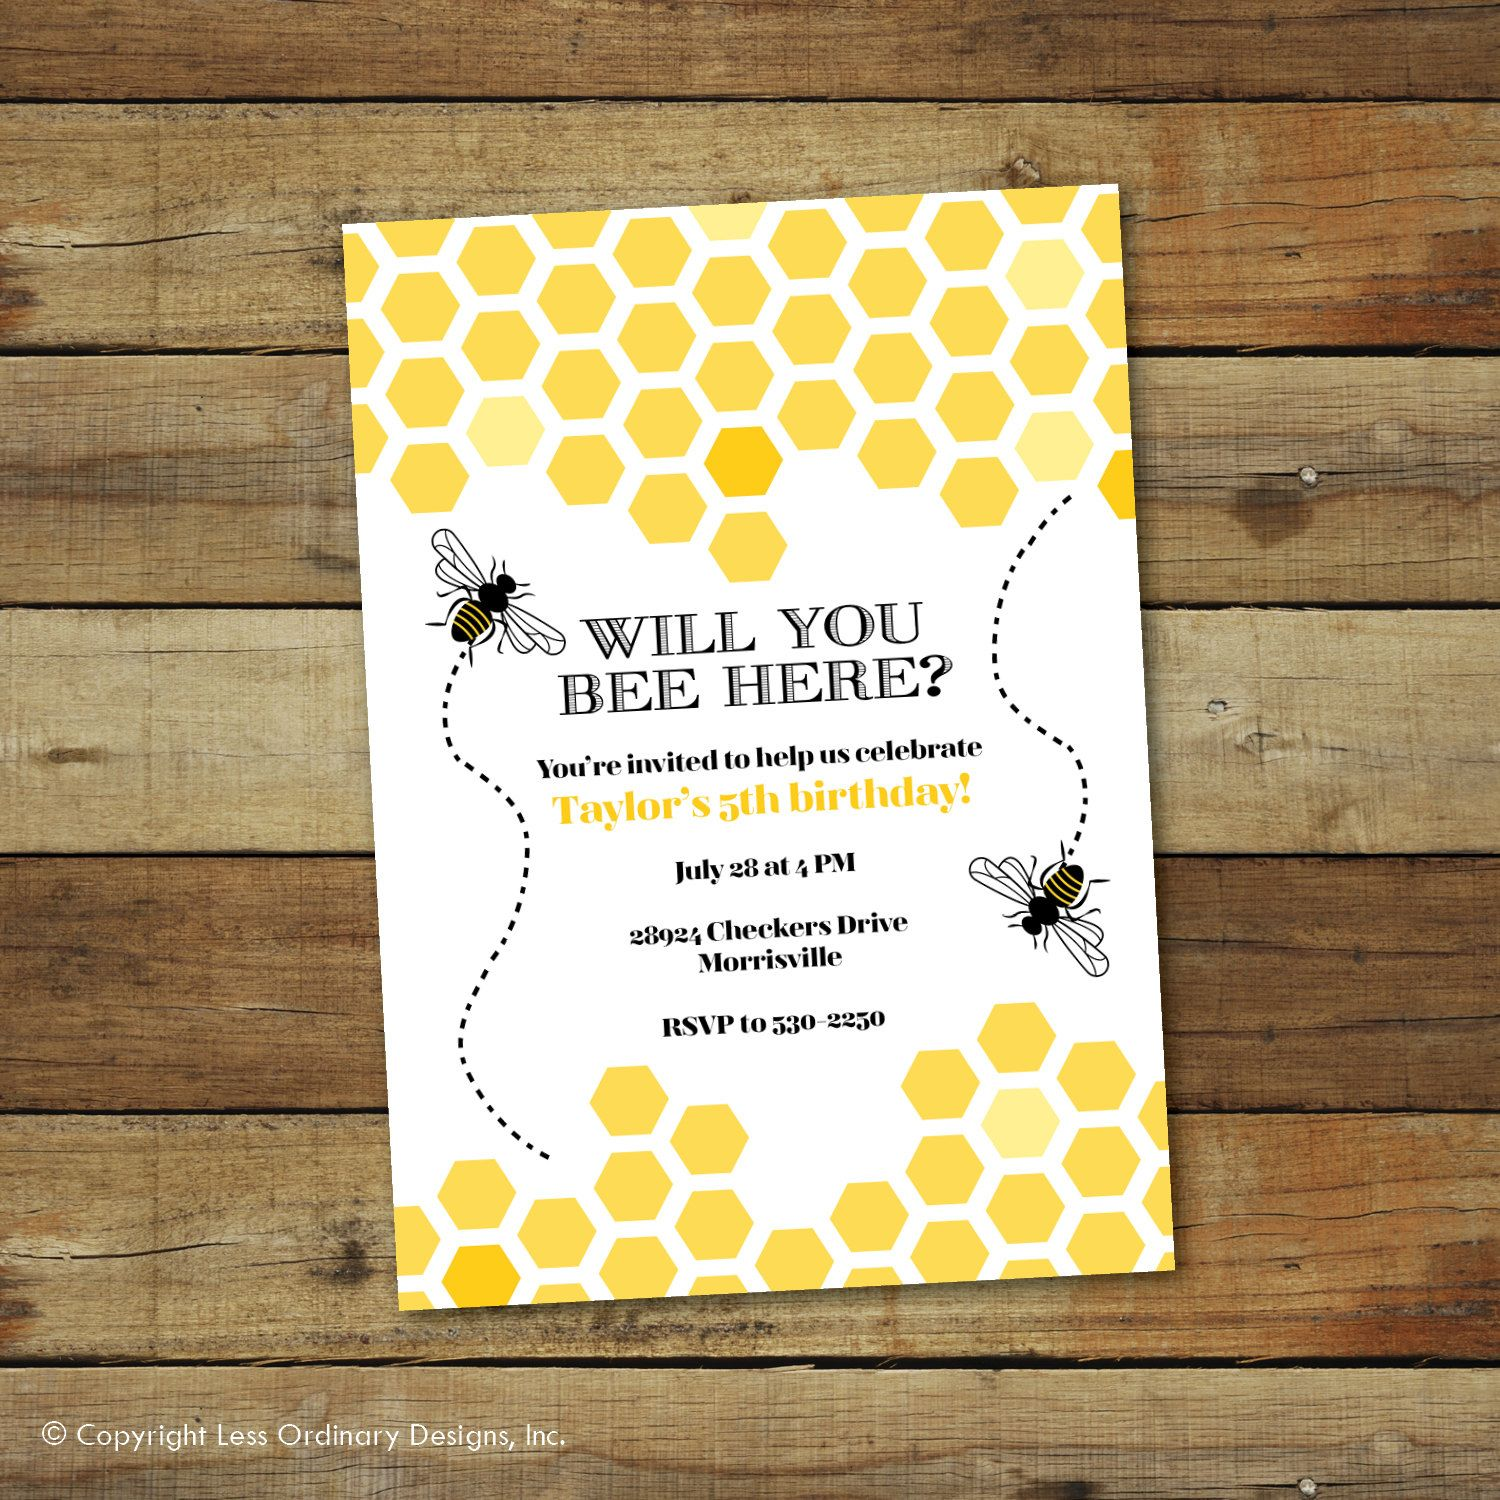 Bumble bee birthday party invitation, bee hive birthday party theme ...